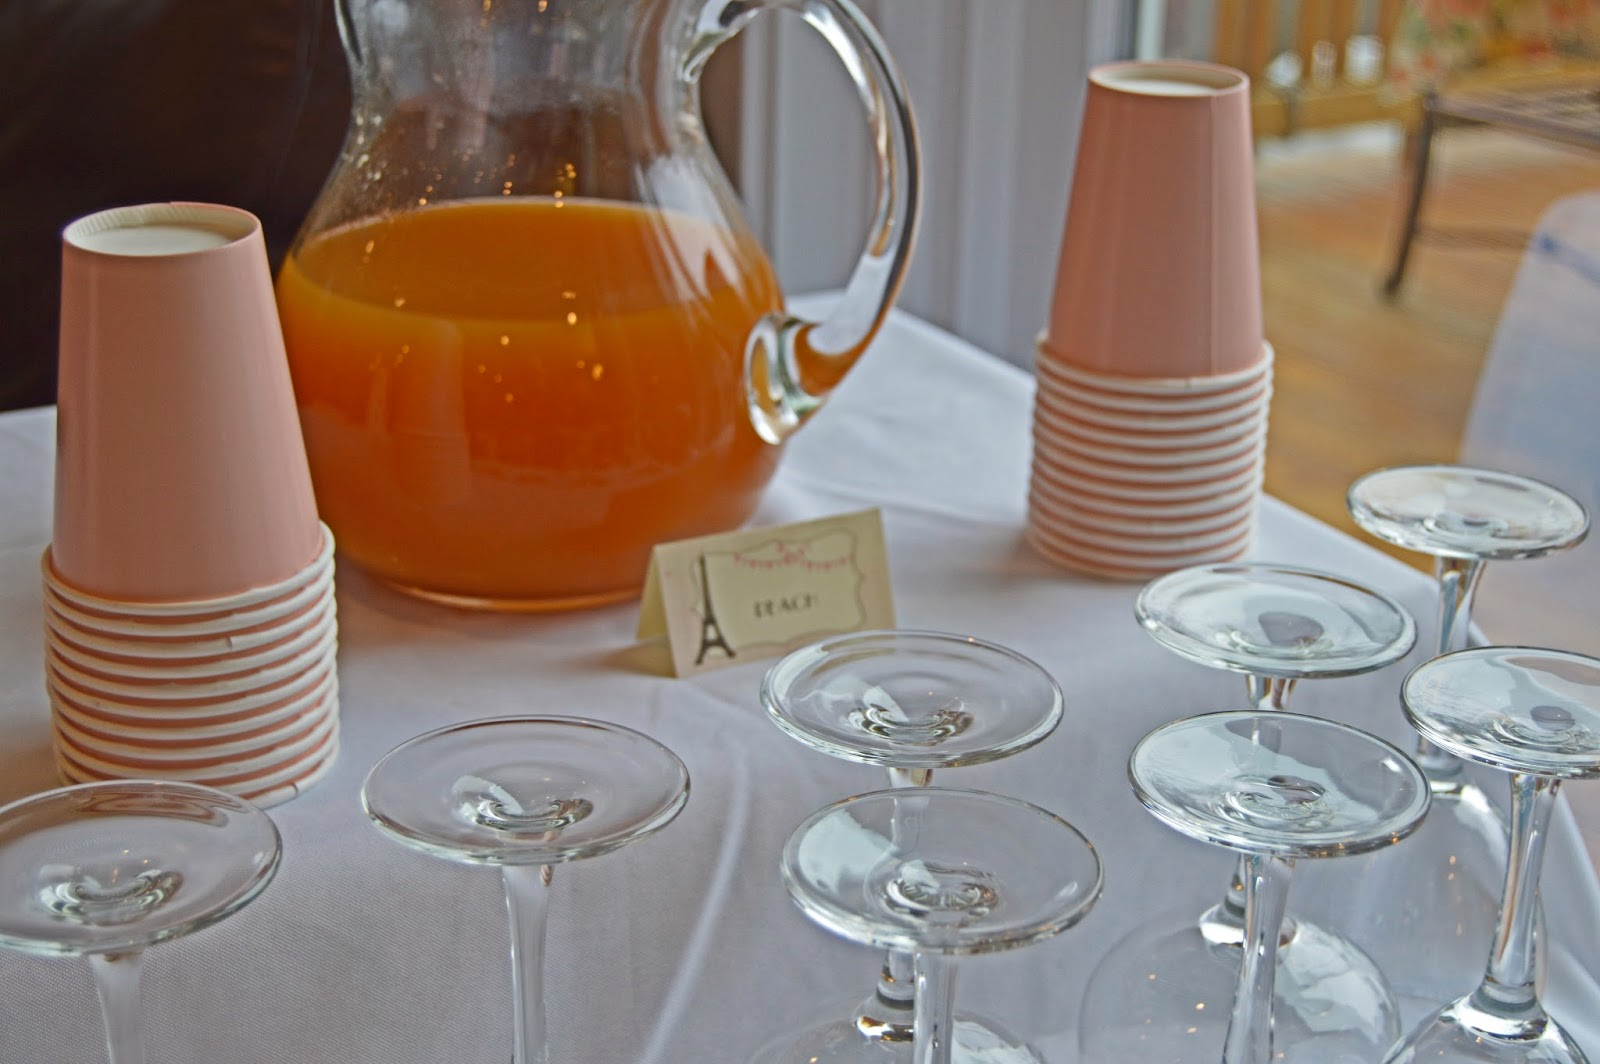 Paris Themed Birthday Party: Bellini and Mimosa Bar